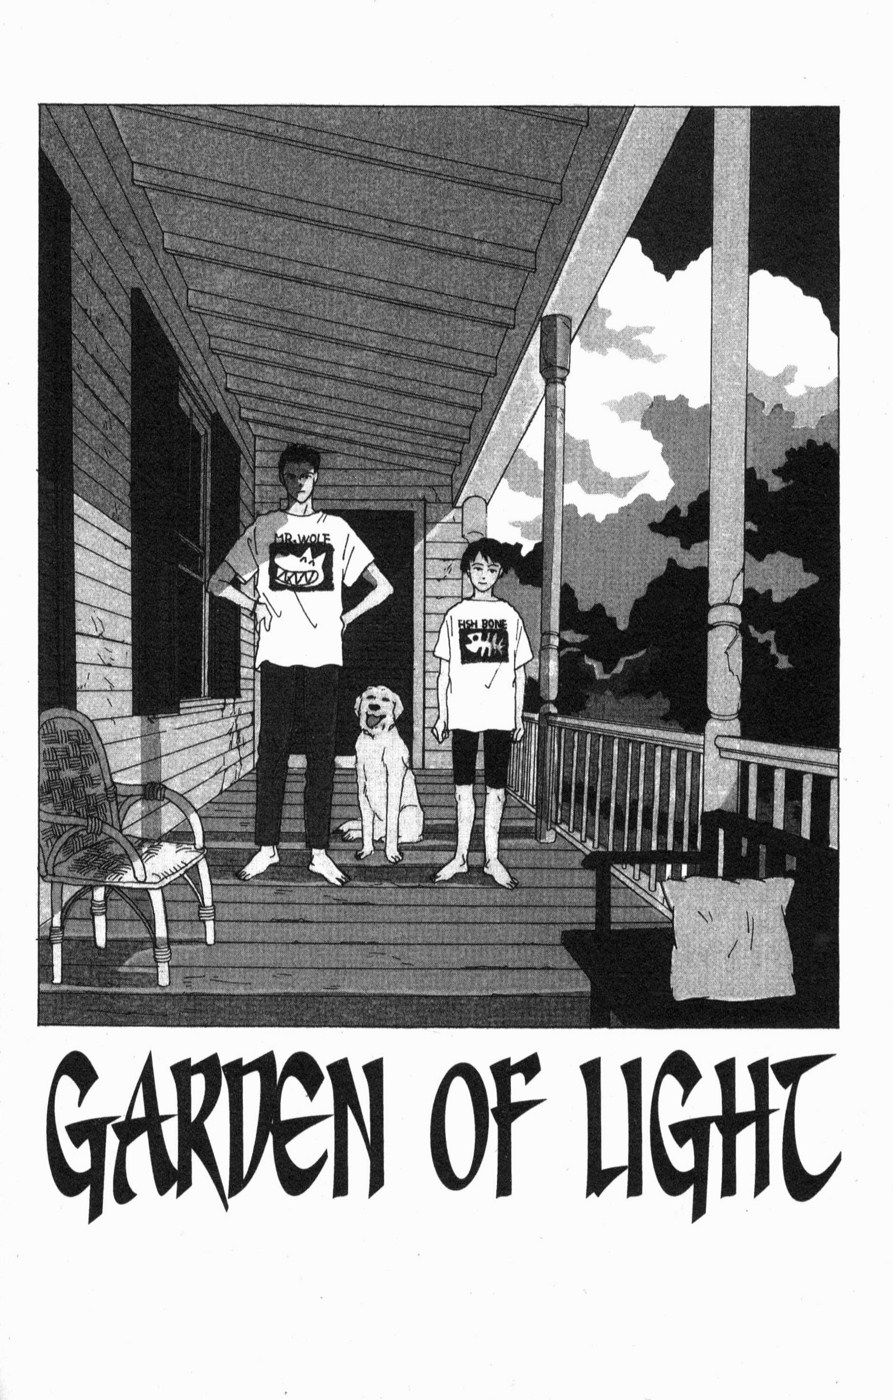 A story about garden lights (Chapter 1)